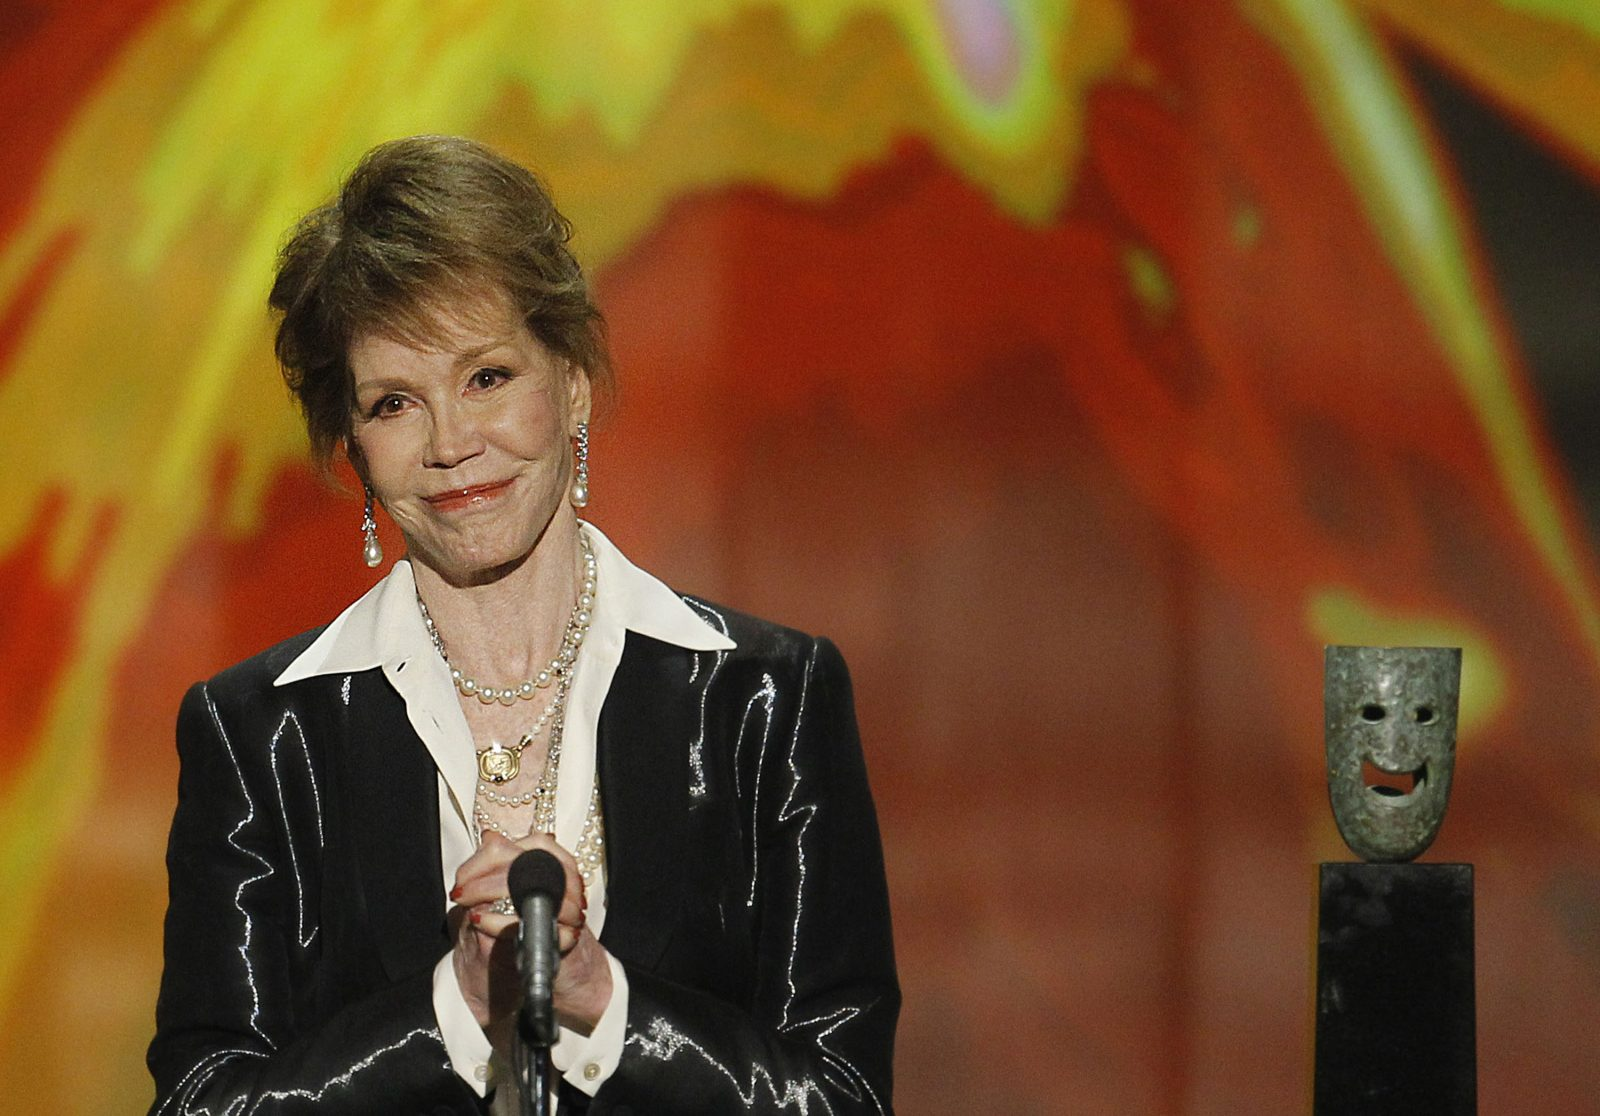 Mary Tyler Moore accepts her Lifetime Achievement Screen Actors Guild award during the 18th Annual Screen Actors Guild Awards show in 2012. Moore died Wednesday at the age of 80. (Robert Gauthier/Los Angeles Times/TNS)